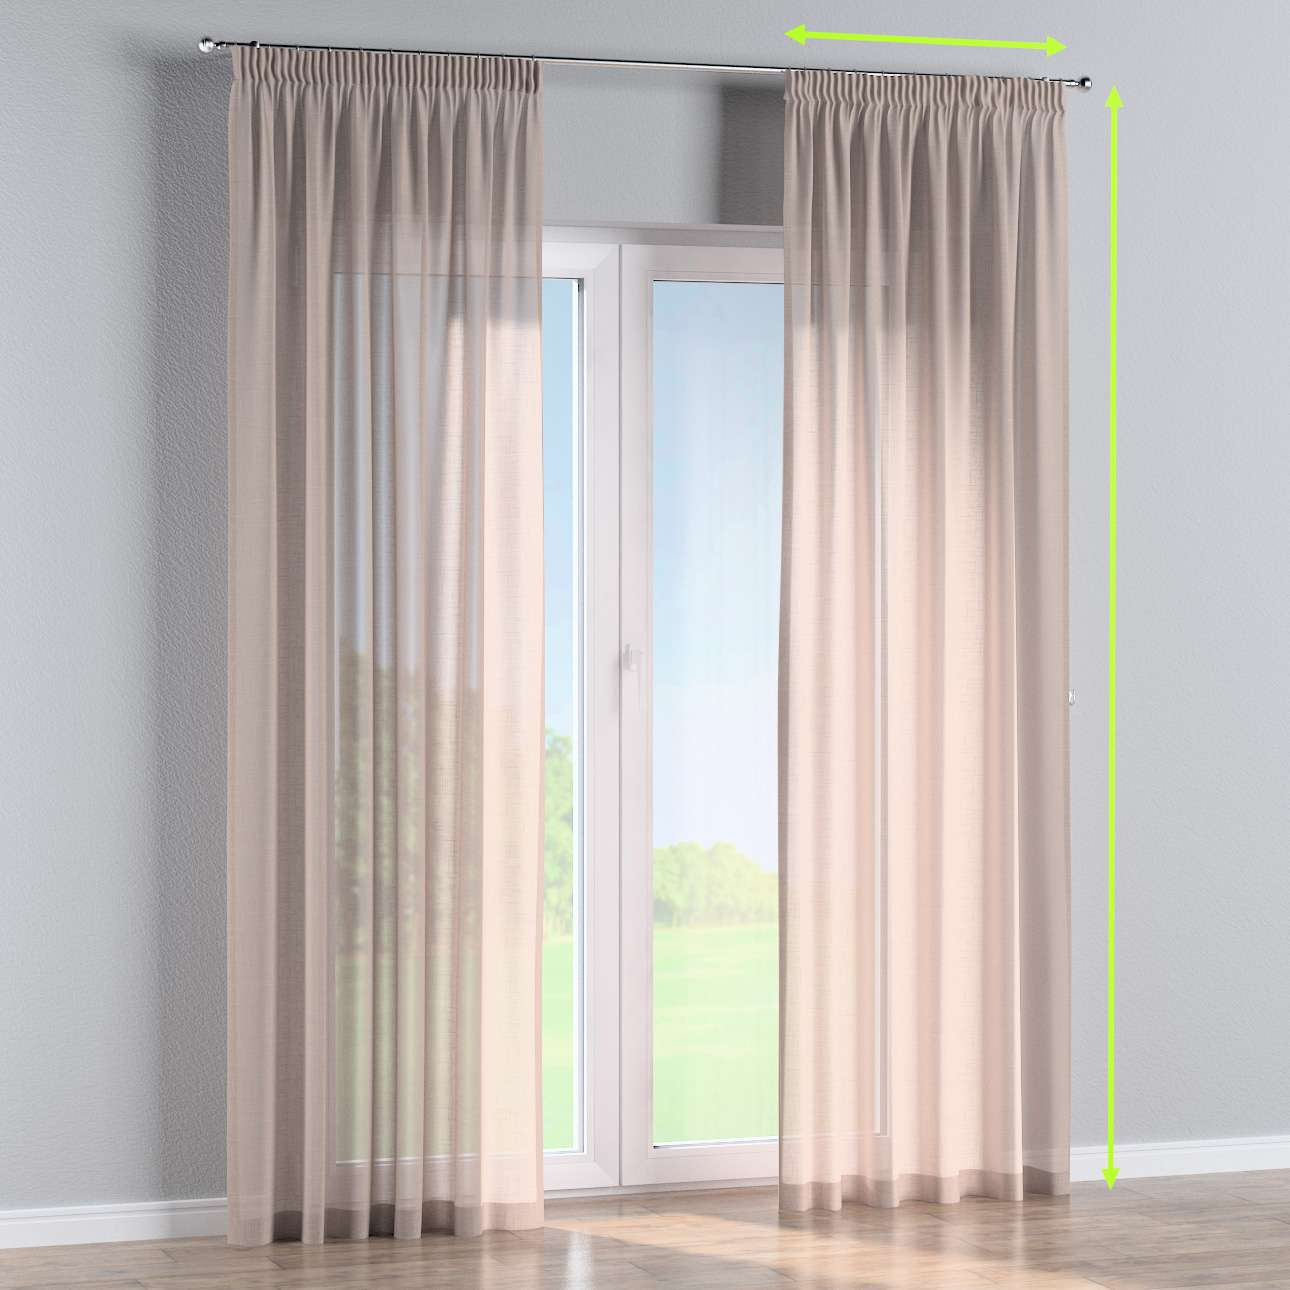 Pencil pleat curtain in collection Romantica, fabric: 142-89